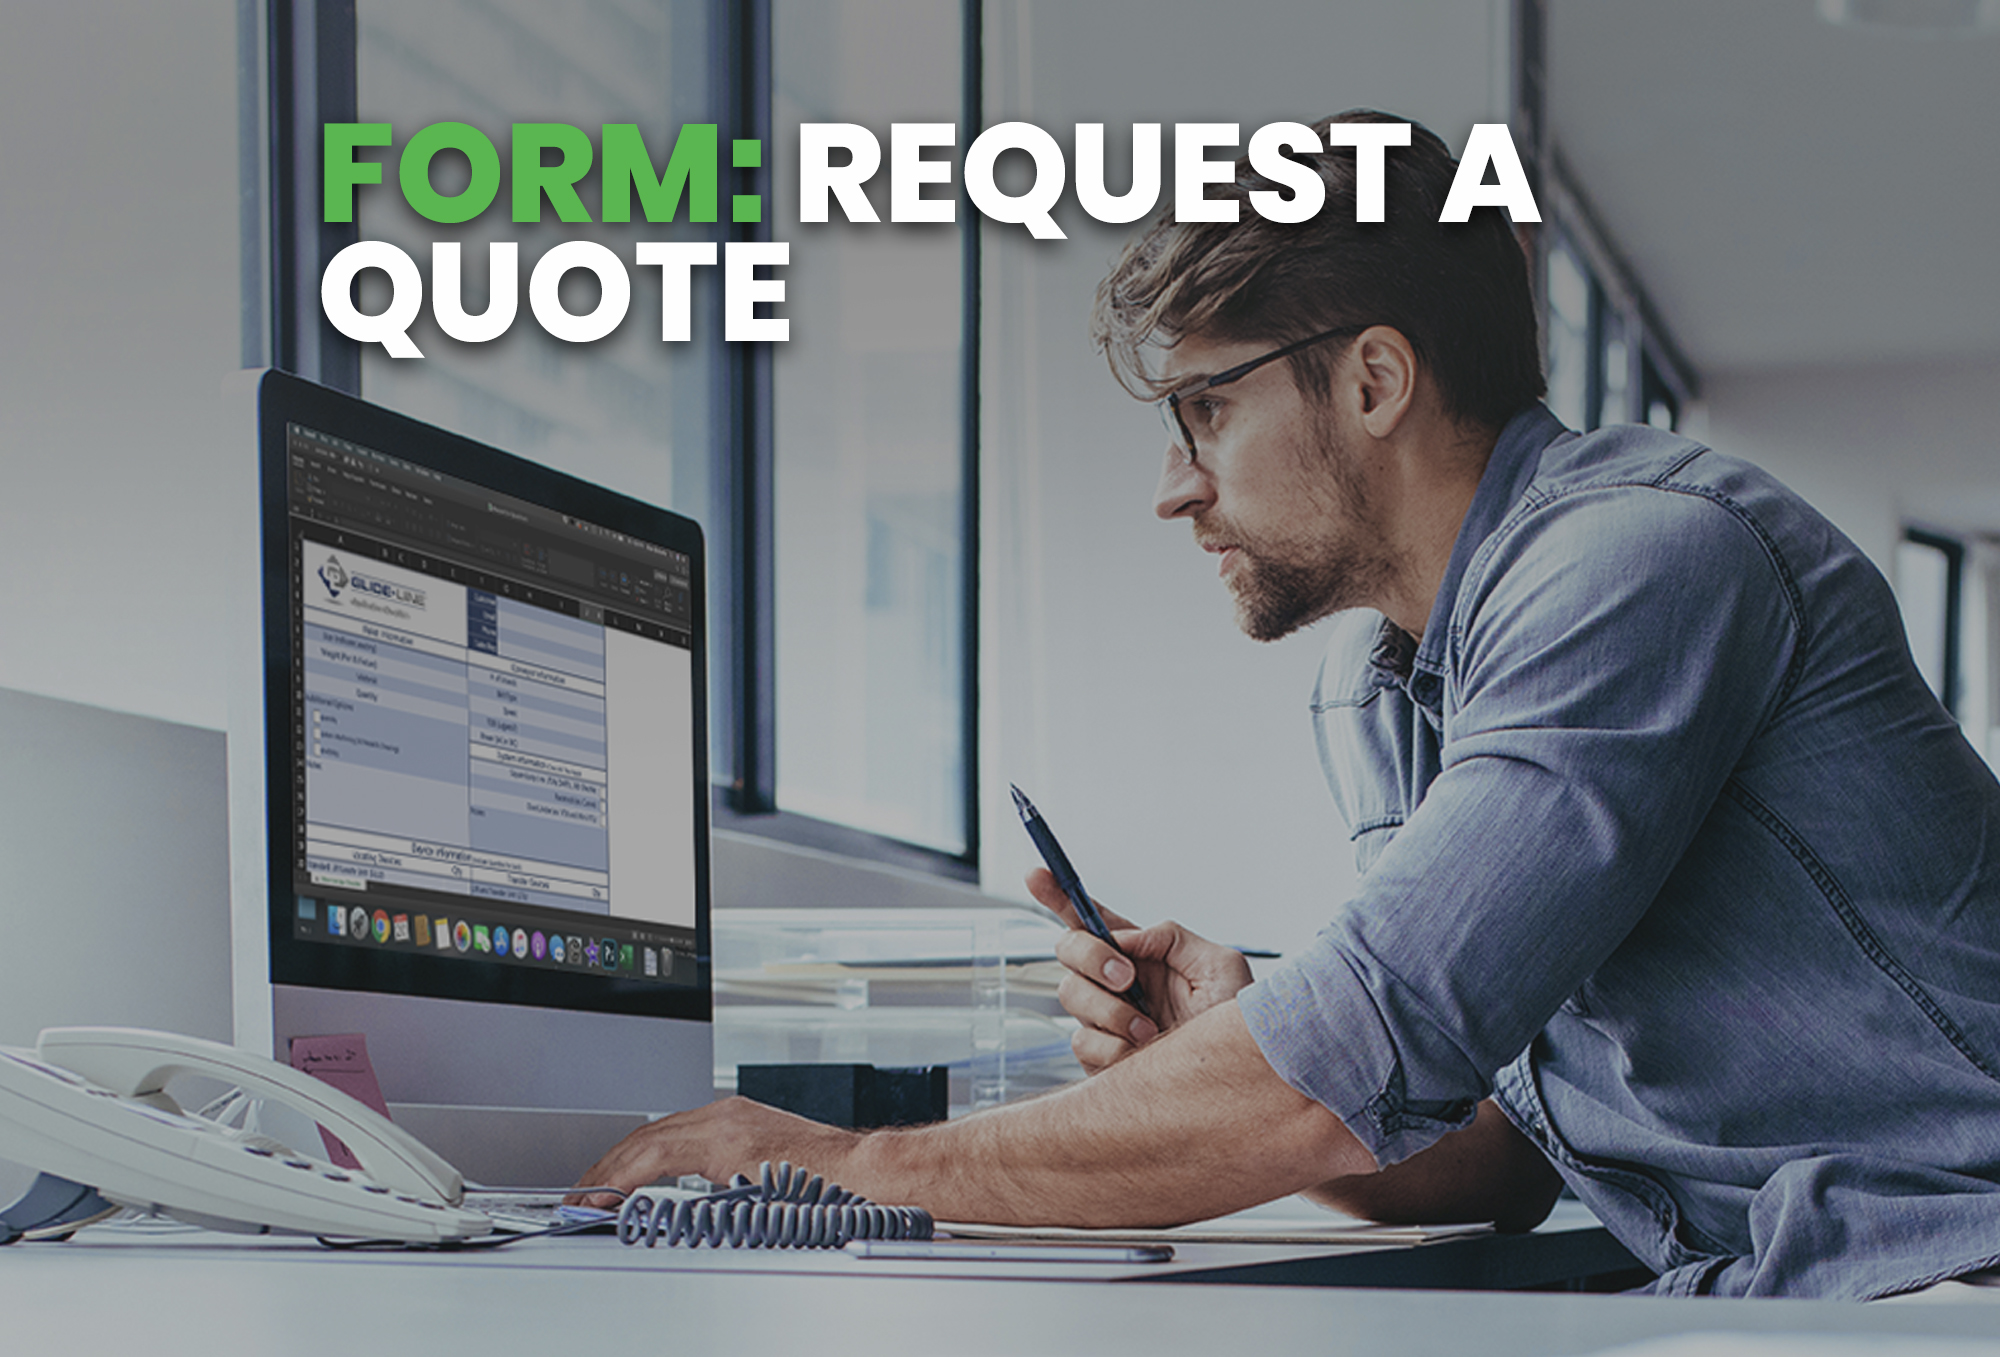 request a quote form - resource